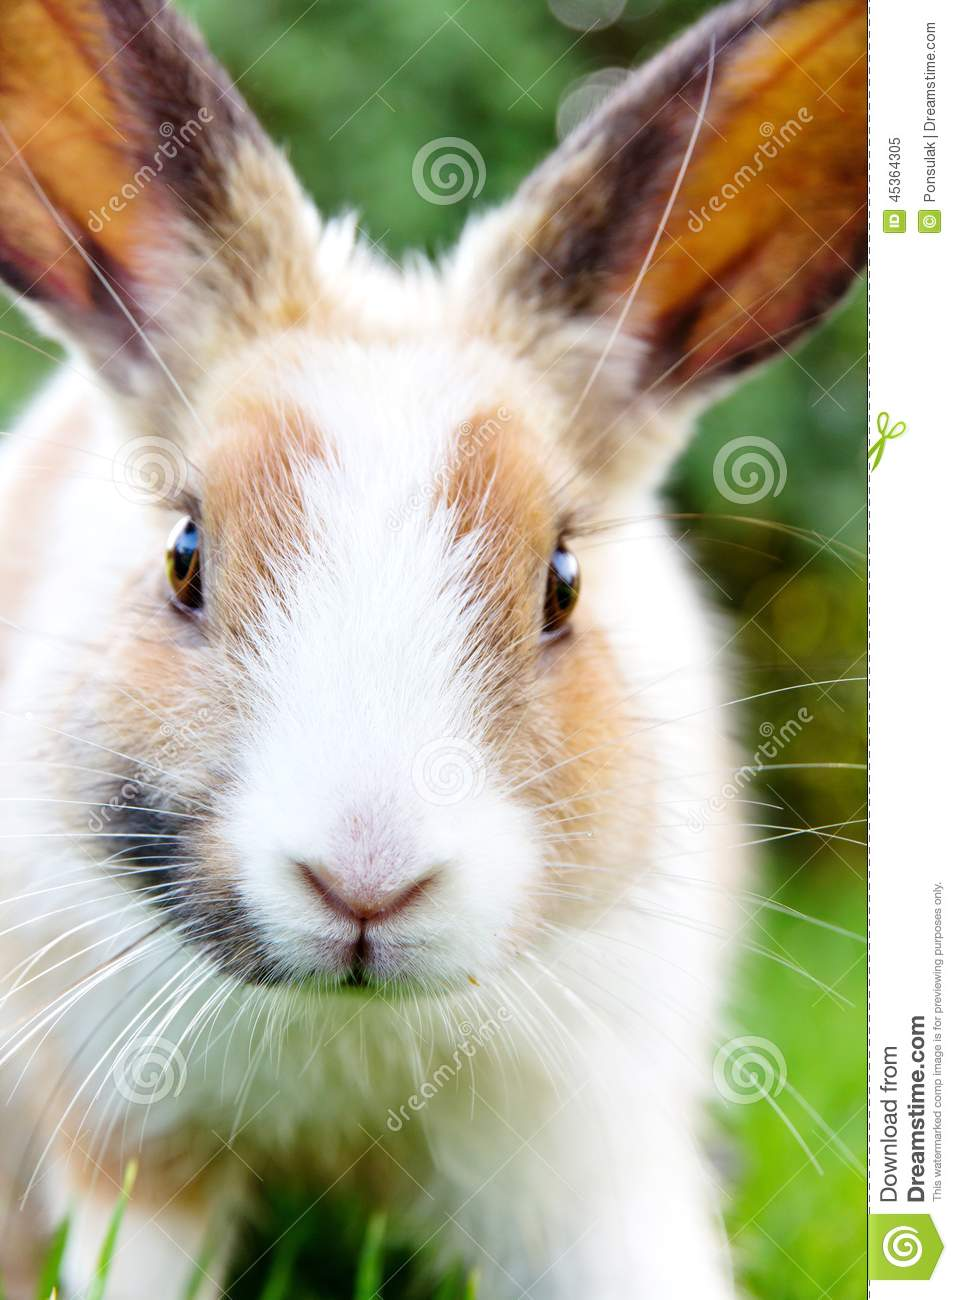 Cute Bunny Rabbit On The Grass Stock Photo Image 45364305